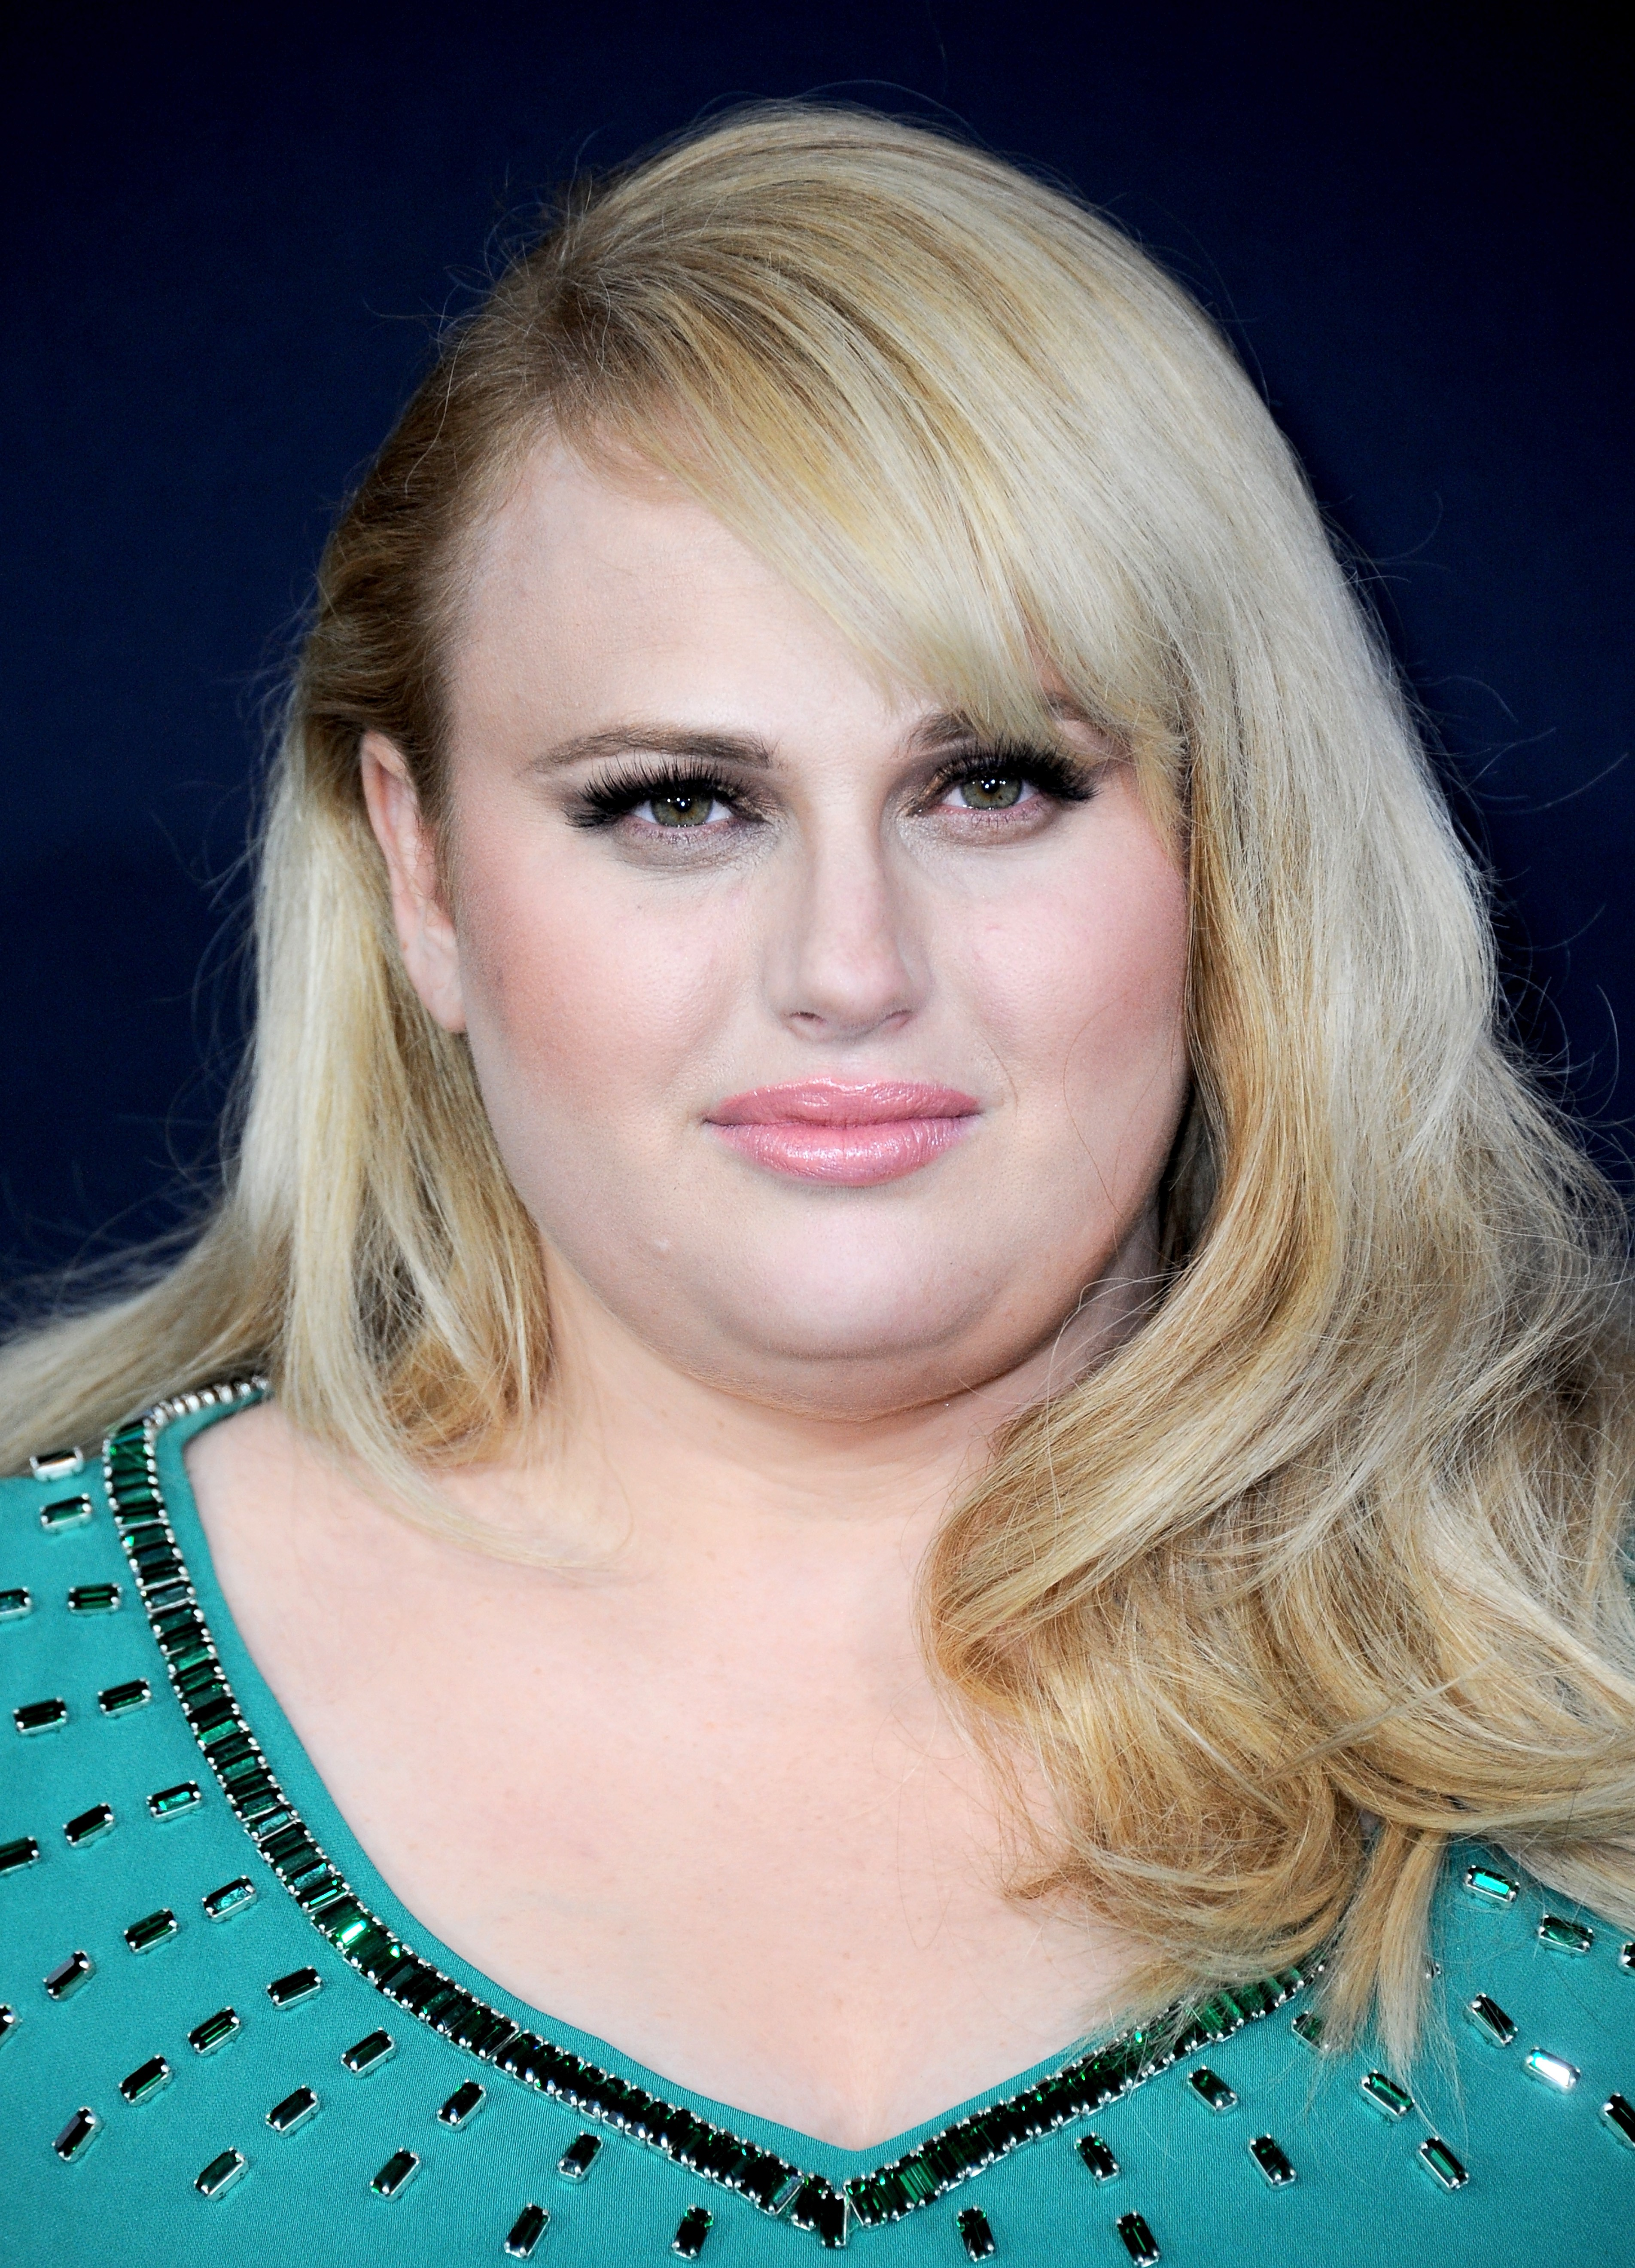 Wallpaper Rebel Wilson Comedy Artist Most Popular Celebs